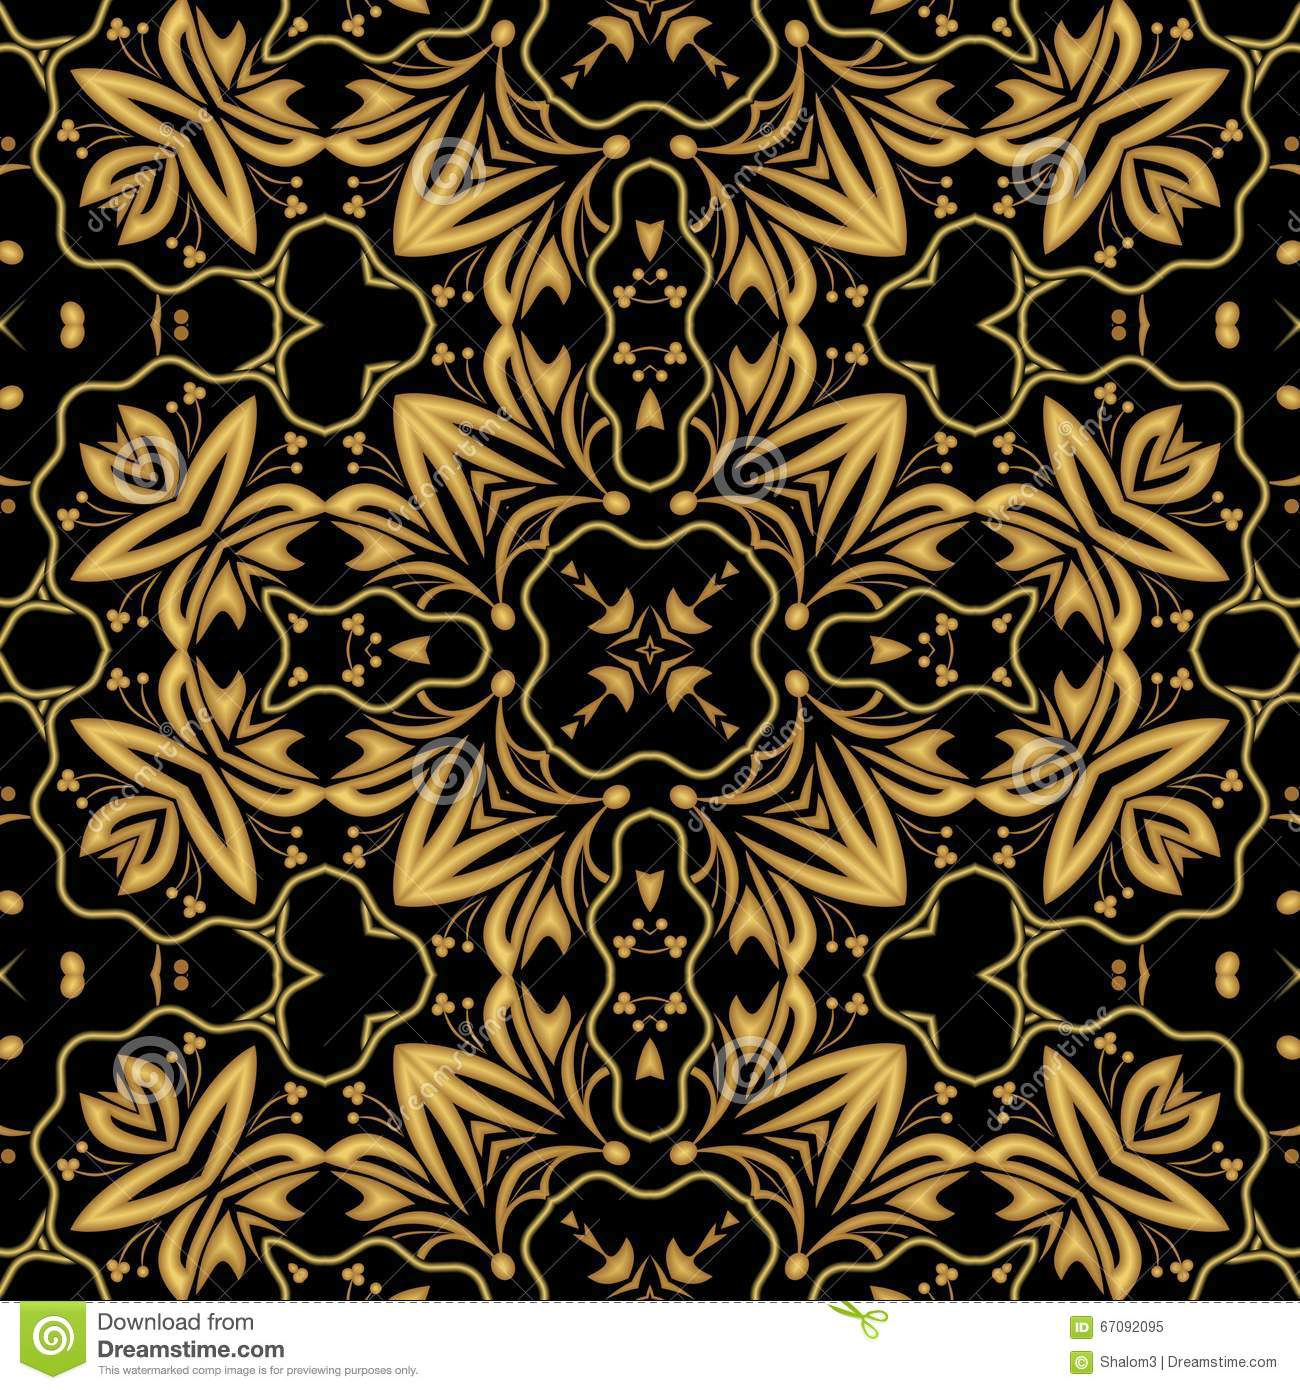 Golden brocade background royalty free stock photo 73110333 - Brocade home decor style ...